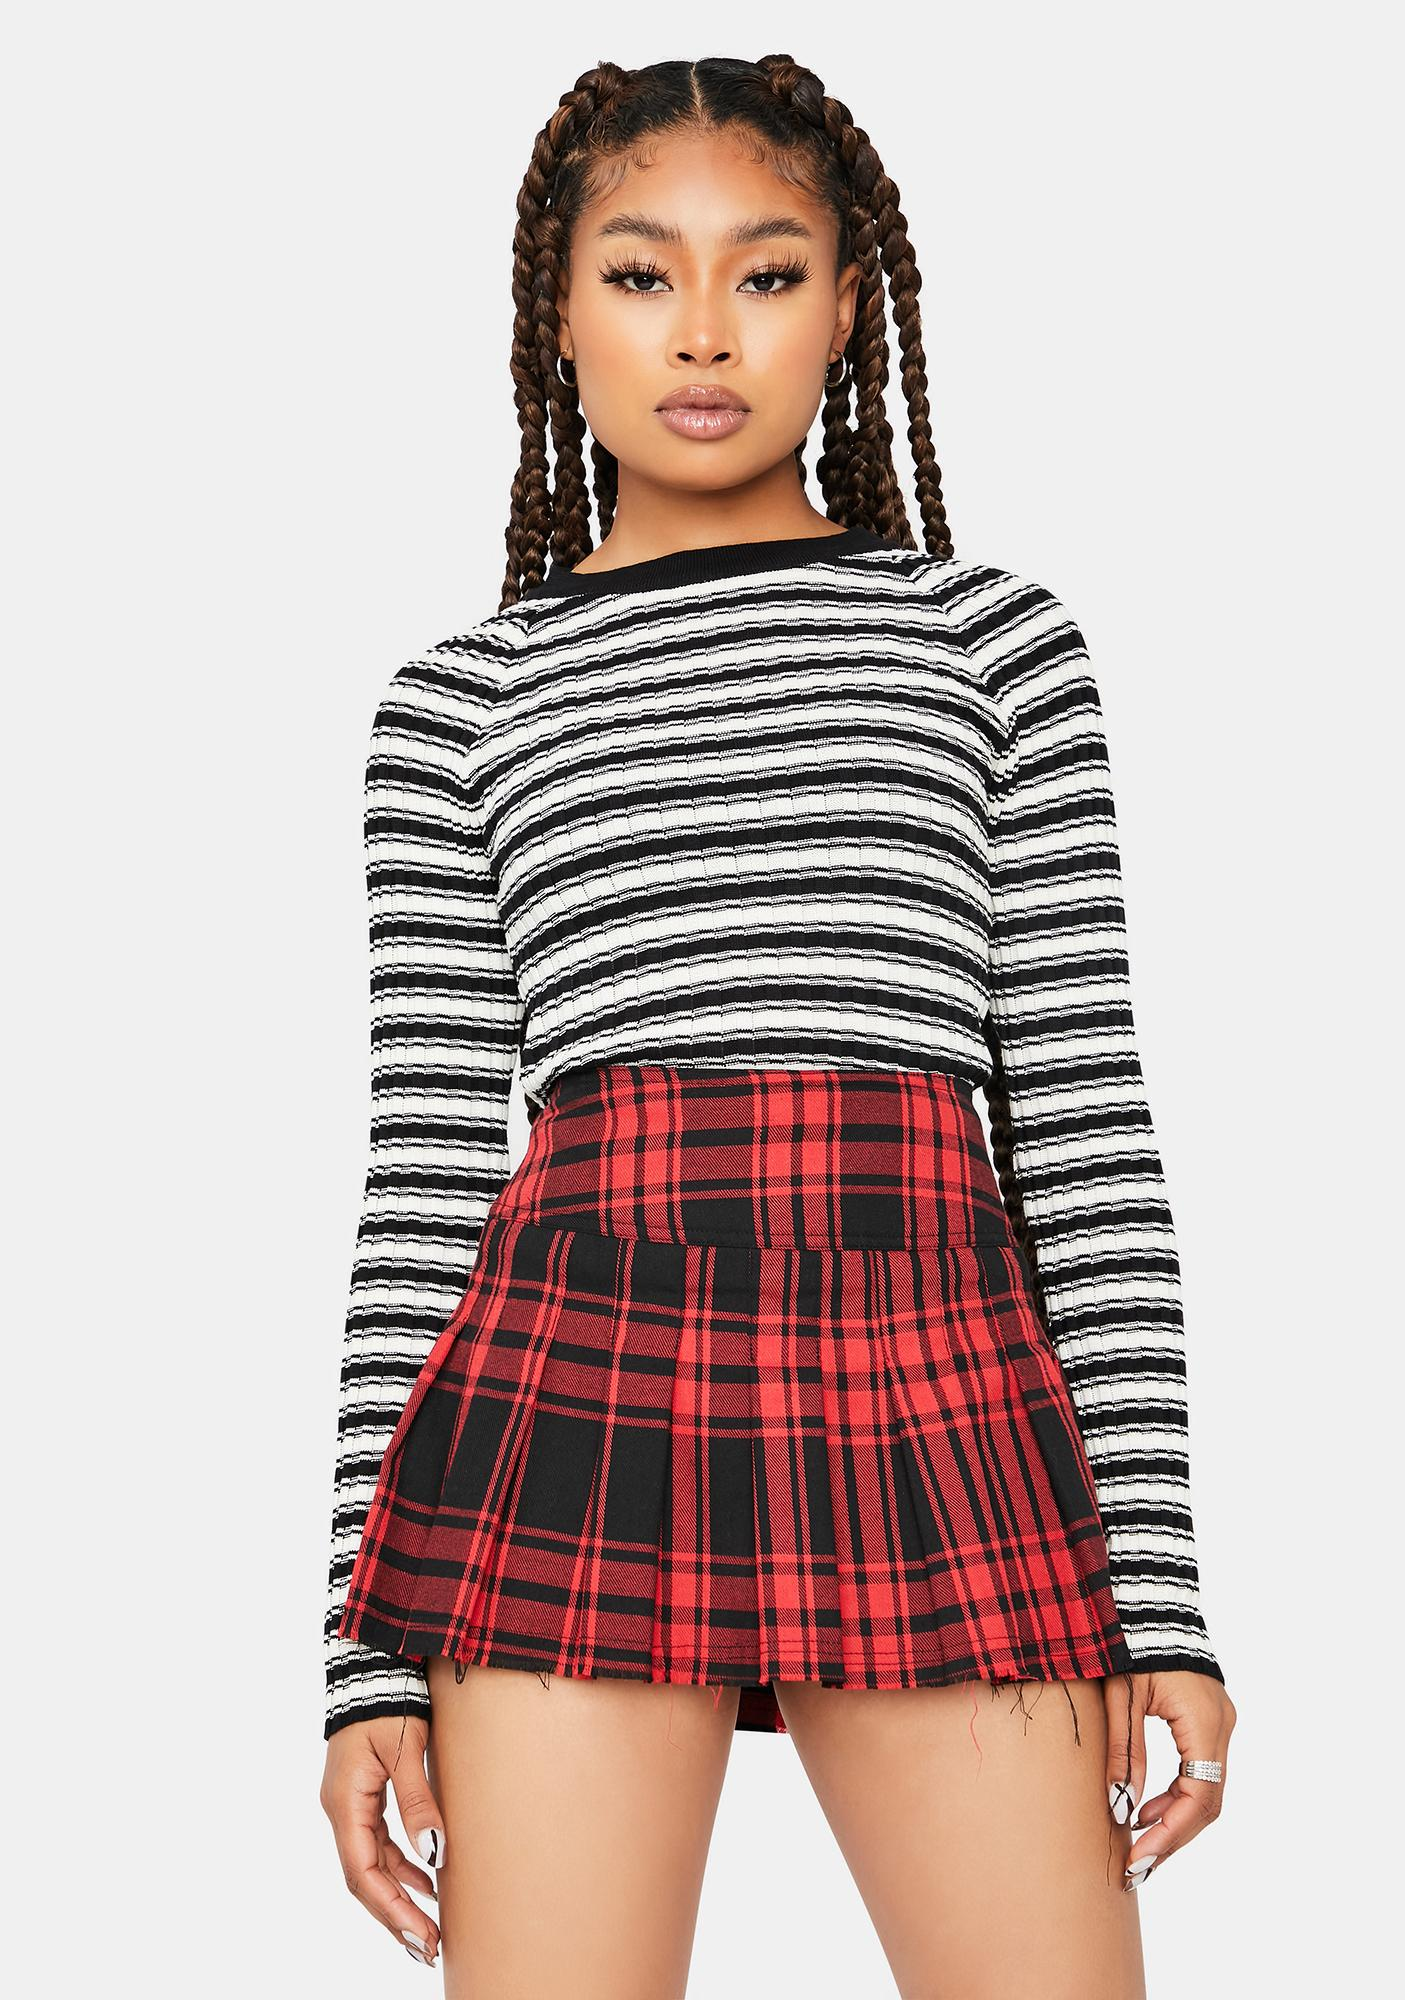 Mind Ya Biz Striped Crop Top